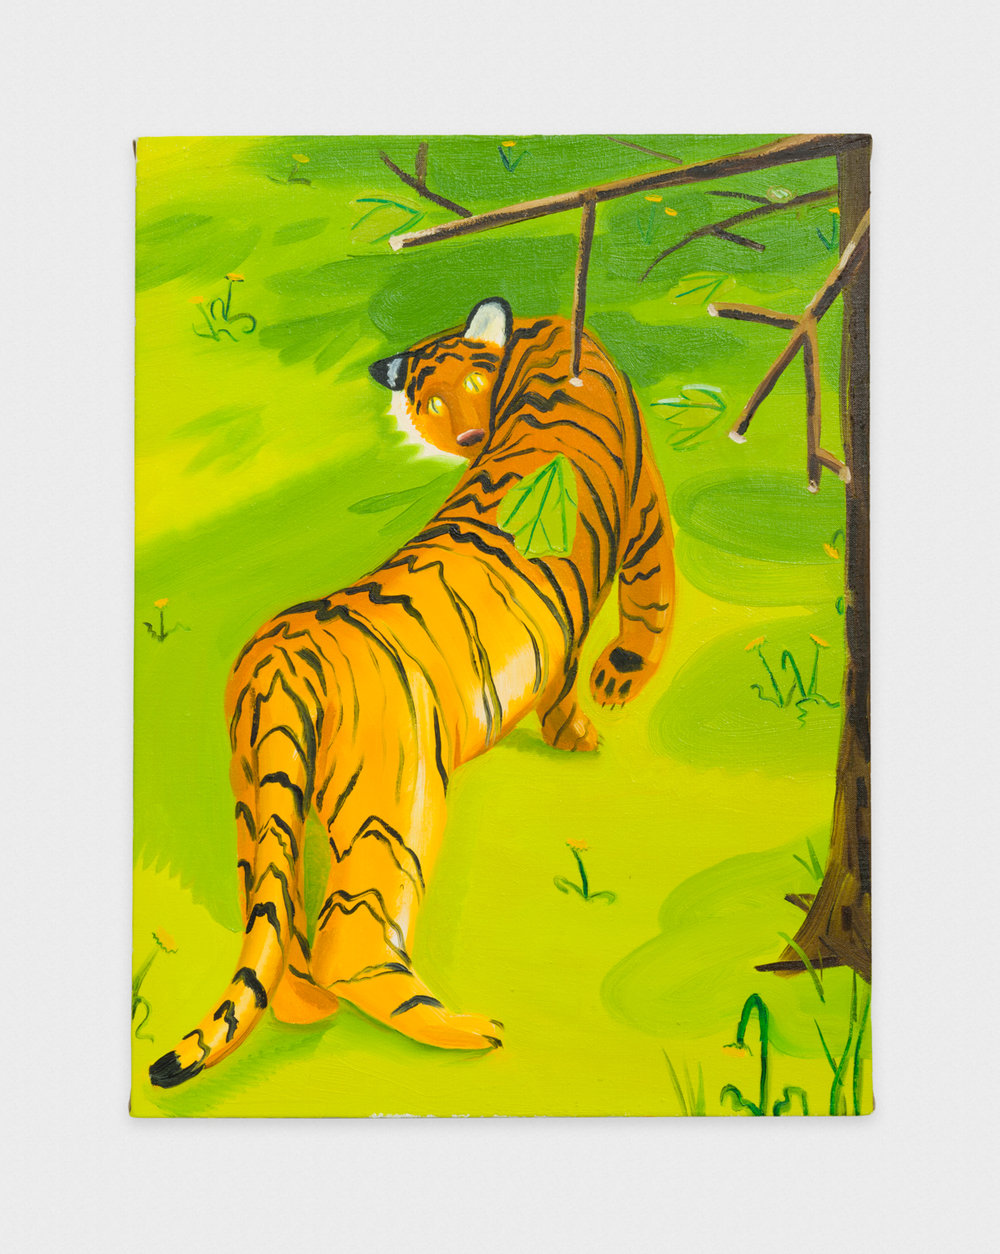 Nikki Maloof  Small Lonesome Tiger  2016 Oil on canvas 24h x 18w in NM001